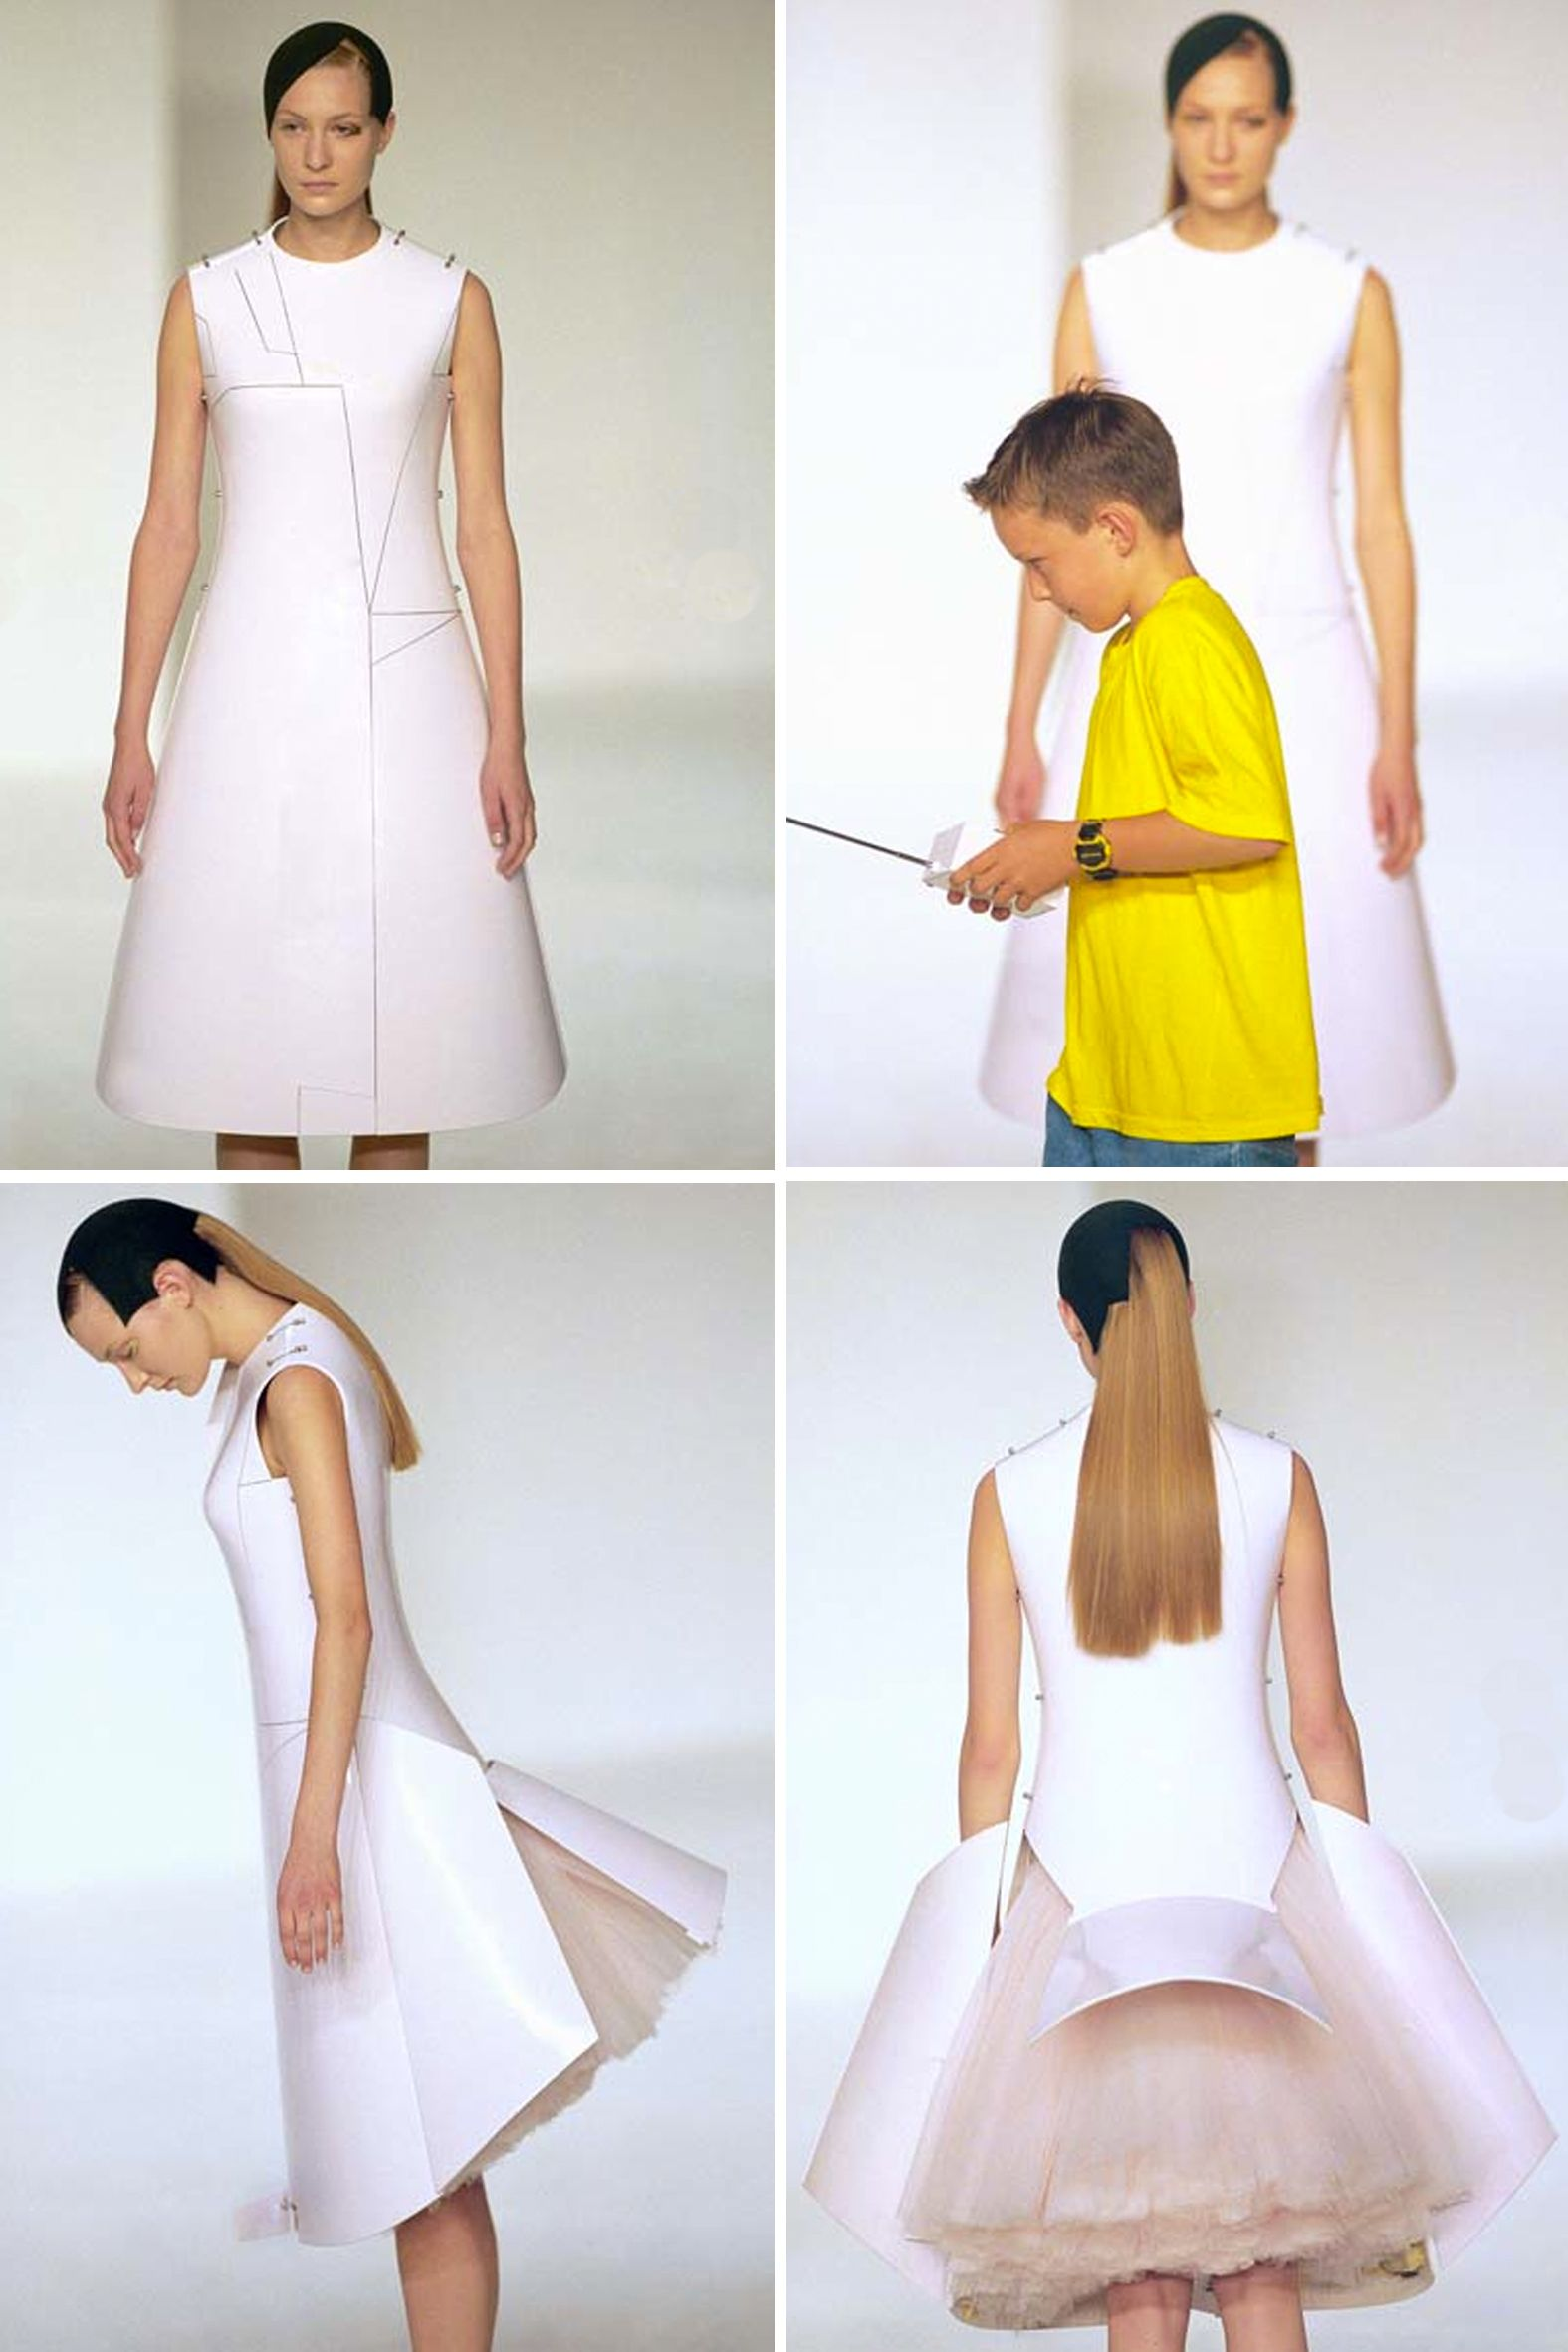 222e16f131 Hussein Chalayan - Before Minus Now - The collection focuses on the  relationship between humans